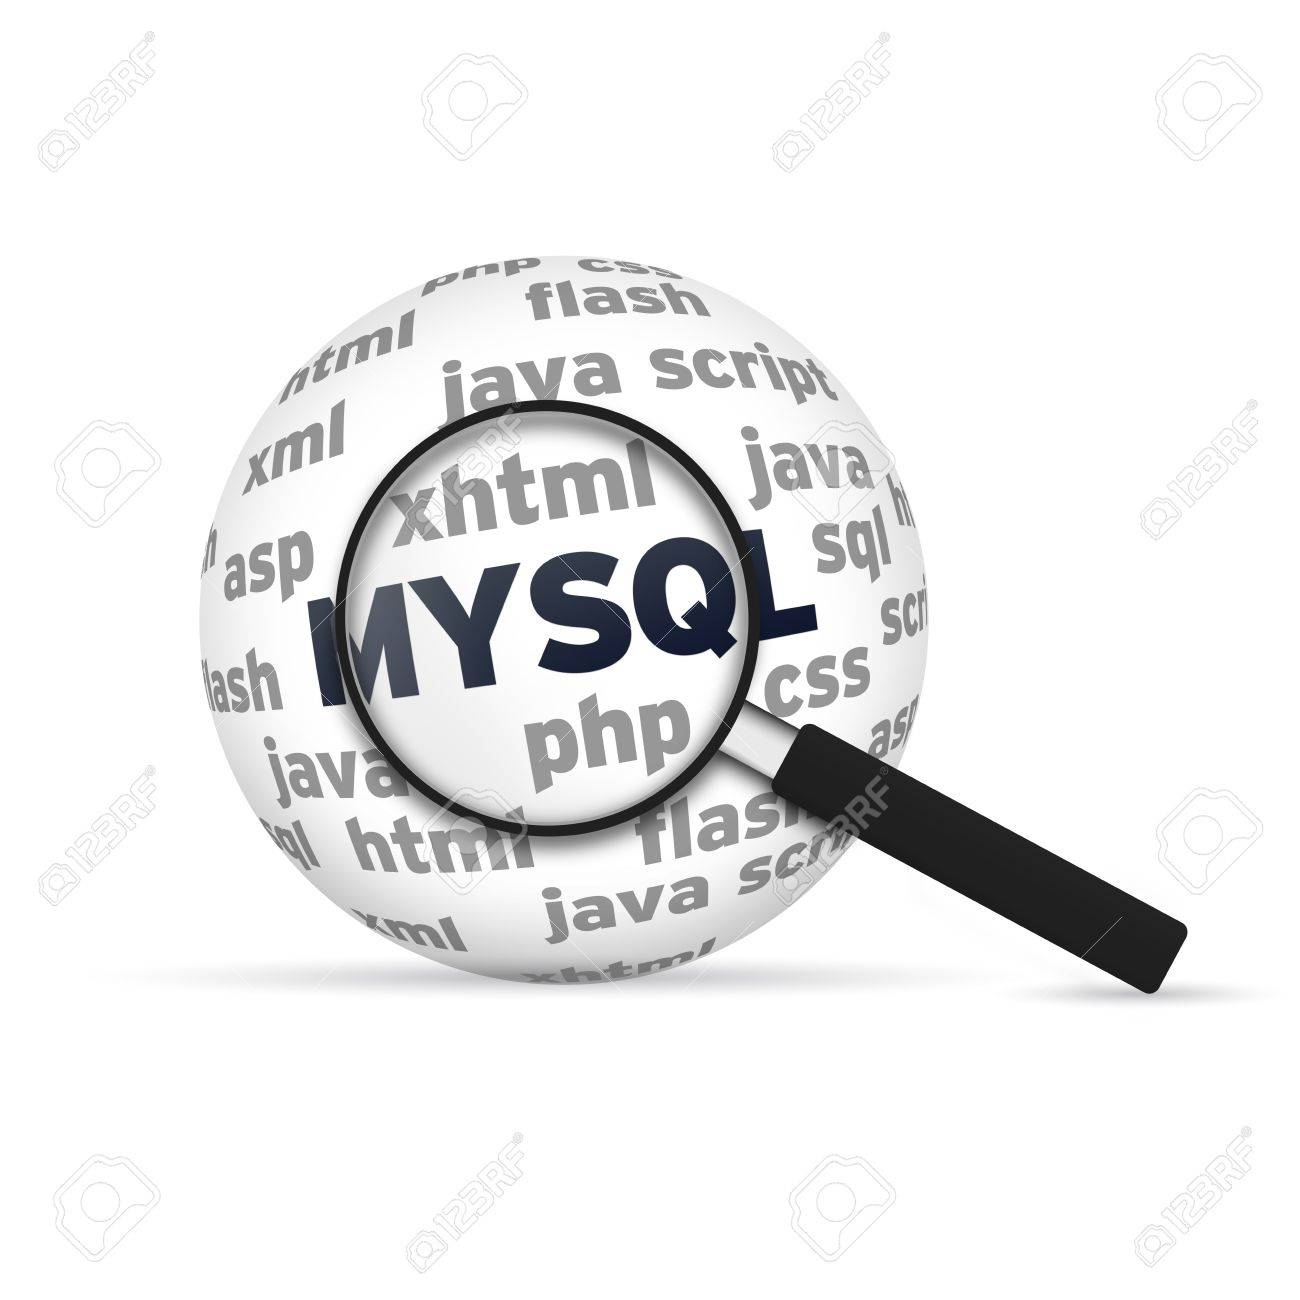 Mysql 3d Sphere with magnifying glass on white background Stock Photo - 14955849